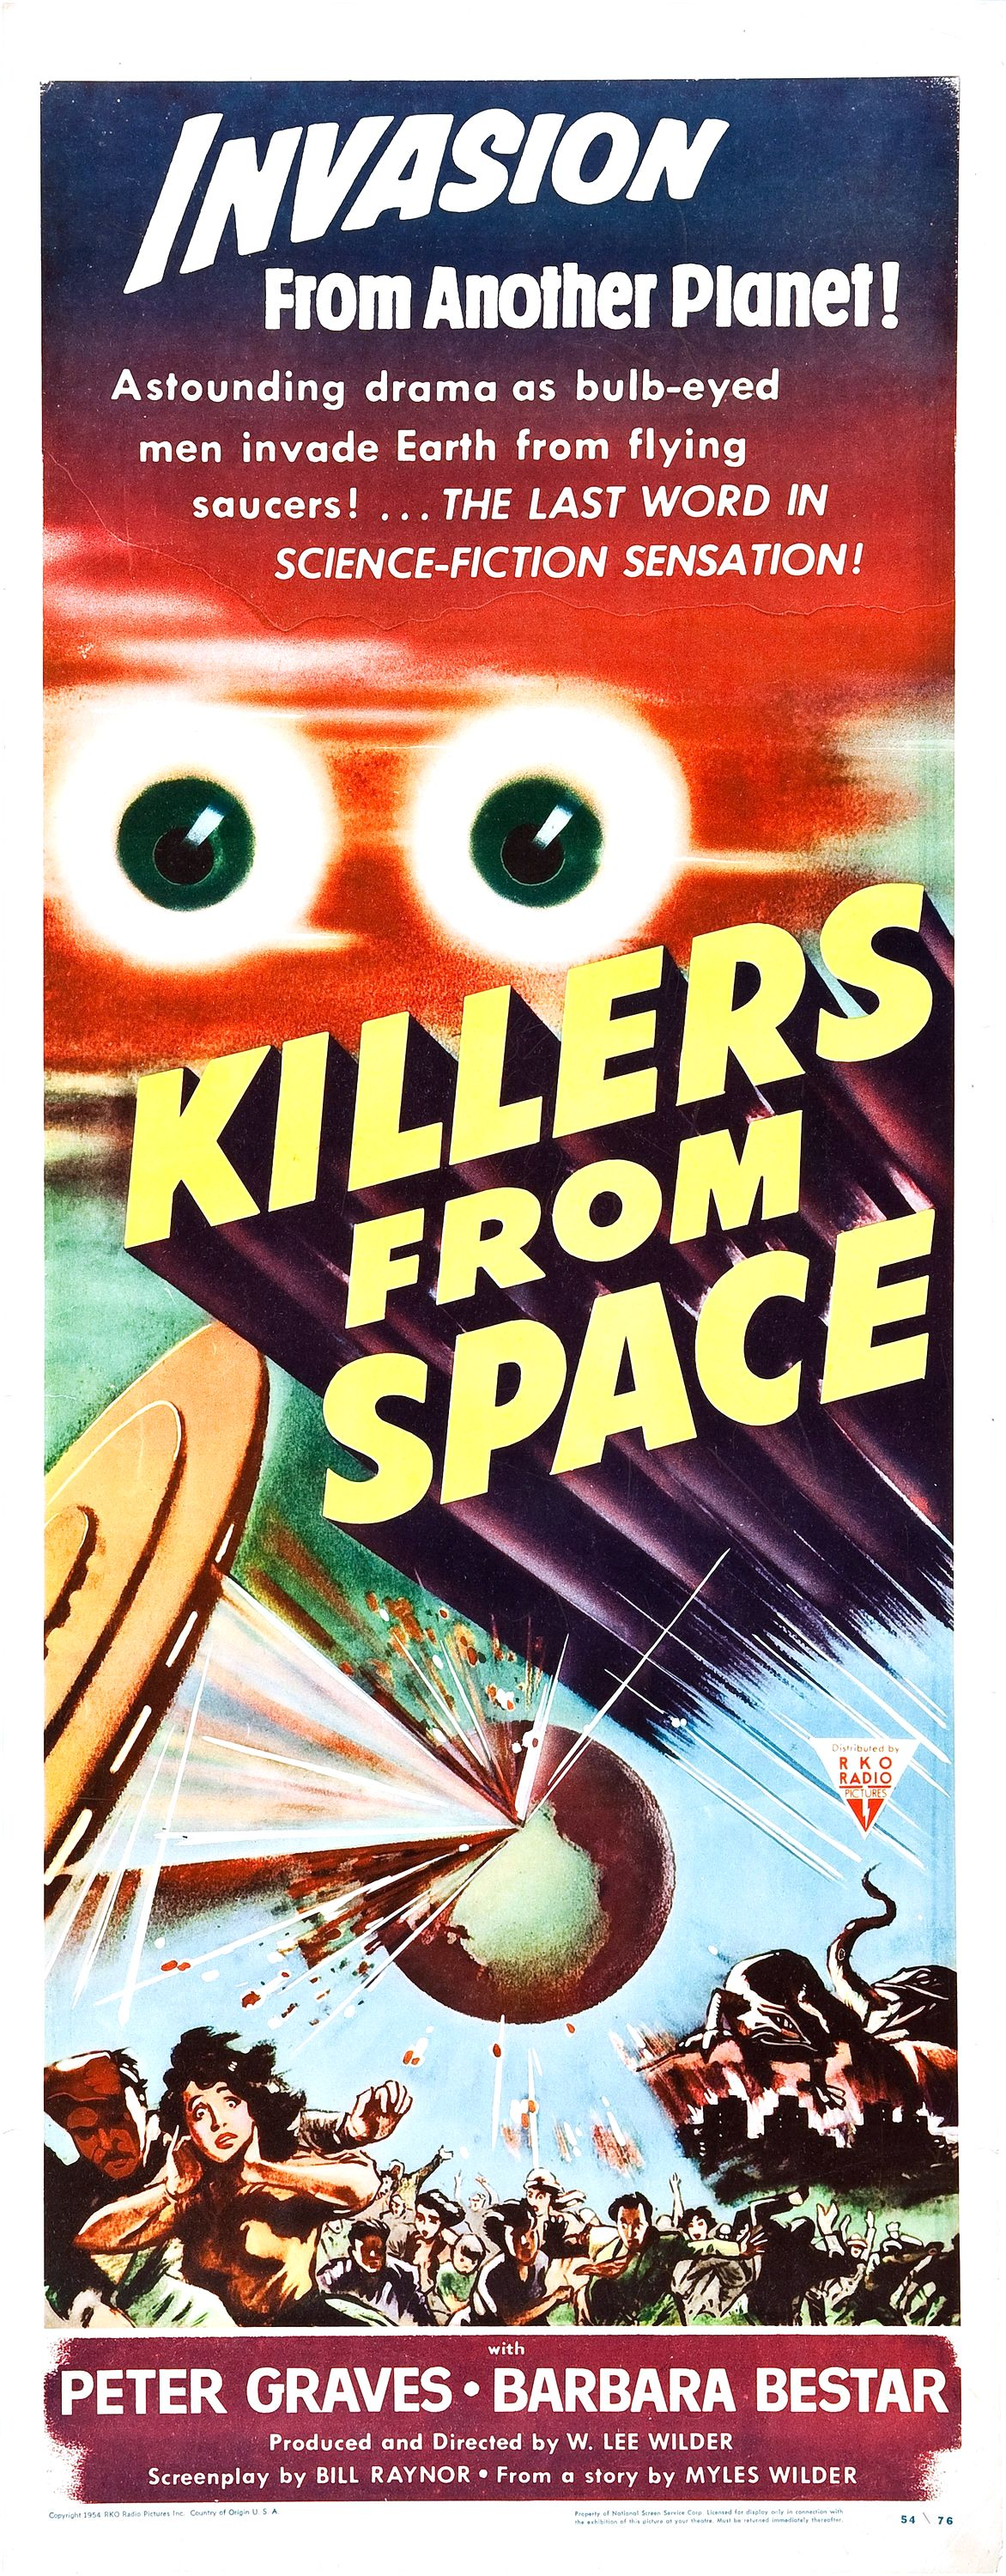 killers_from_space_poster_1954_02.jpg